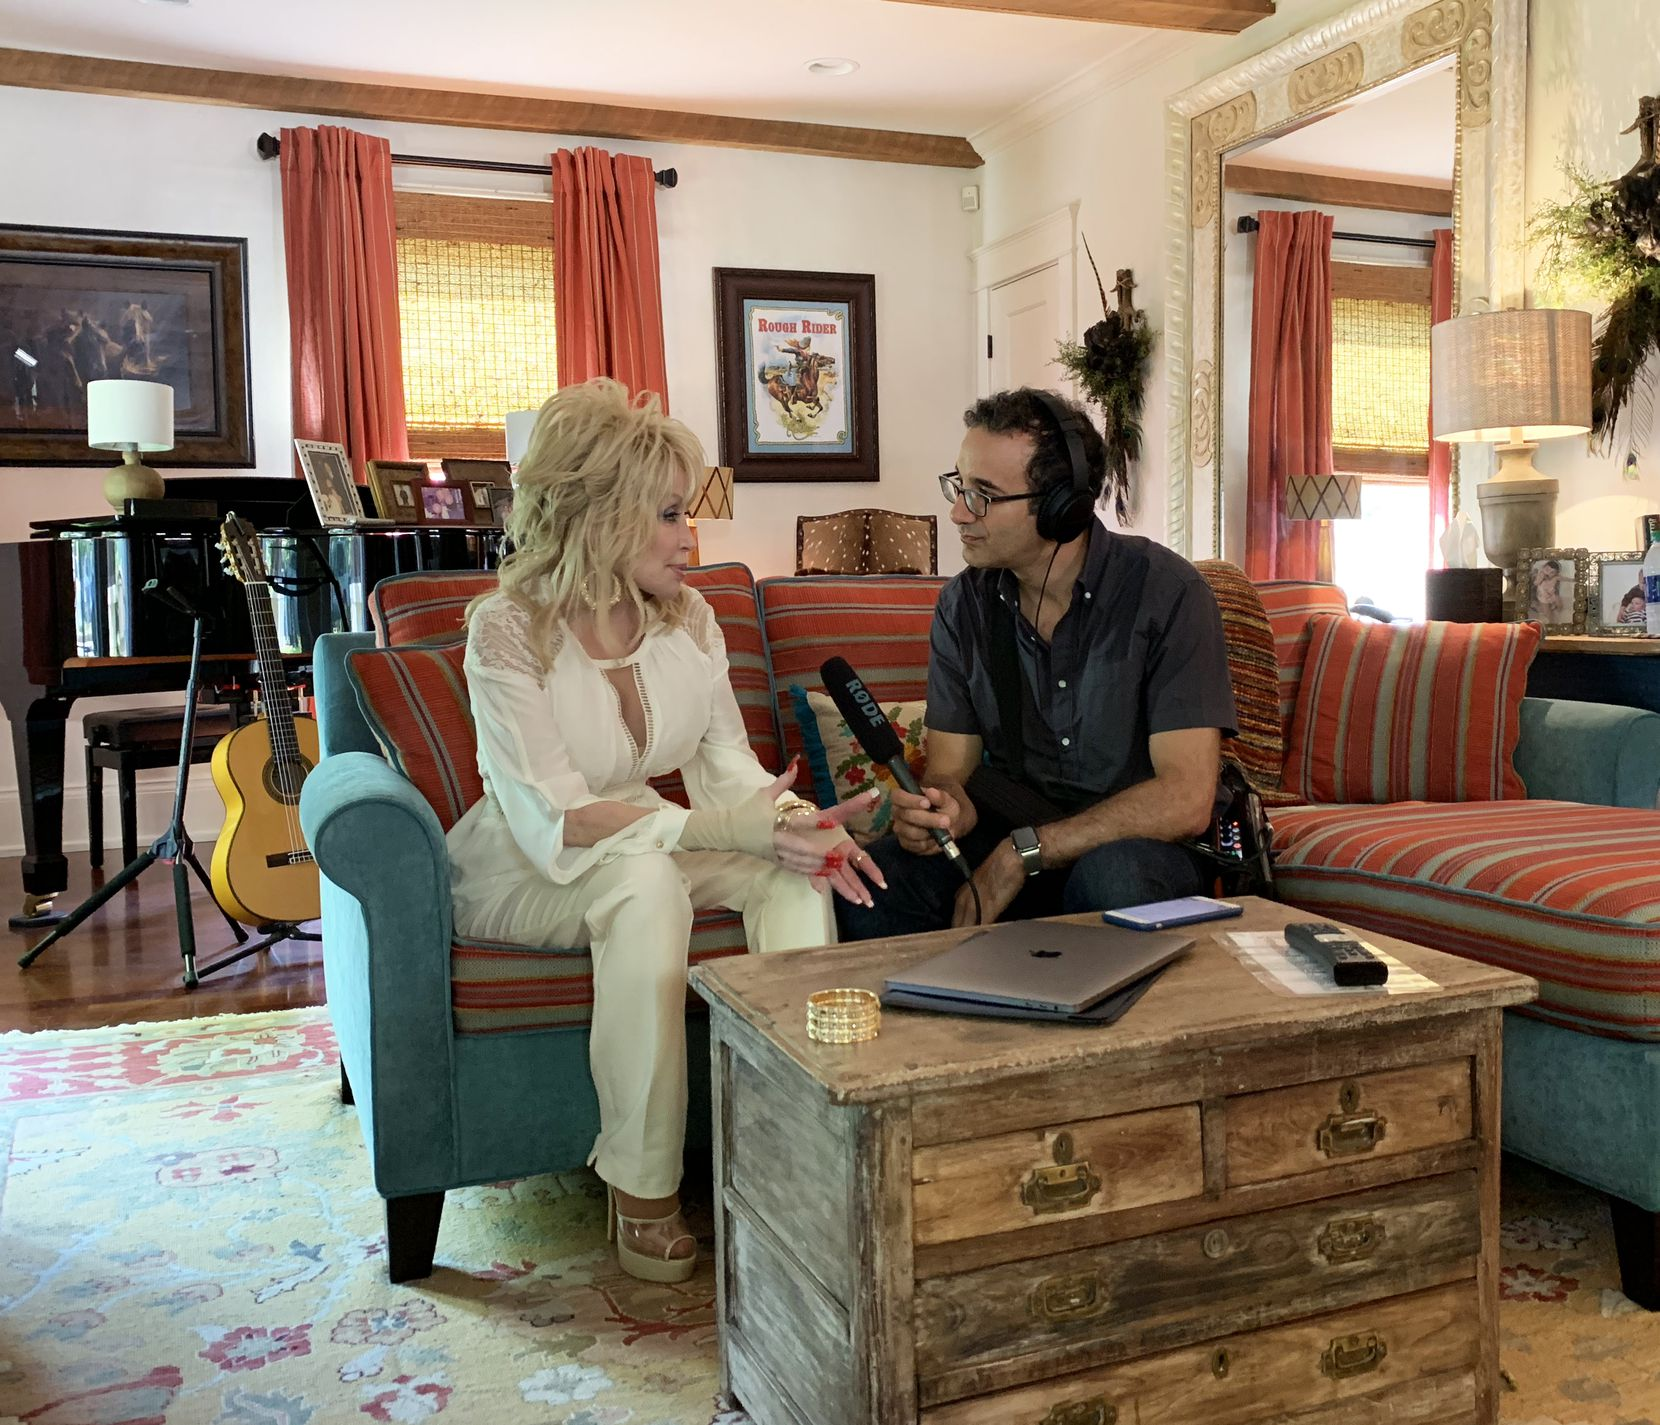 Jad Abumrad interviews Dolly Parton for his podcast 'Dolly Parton's America' from WNYC Studios.